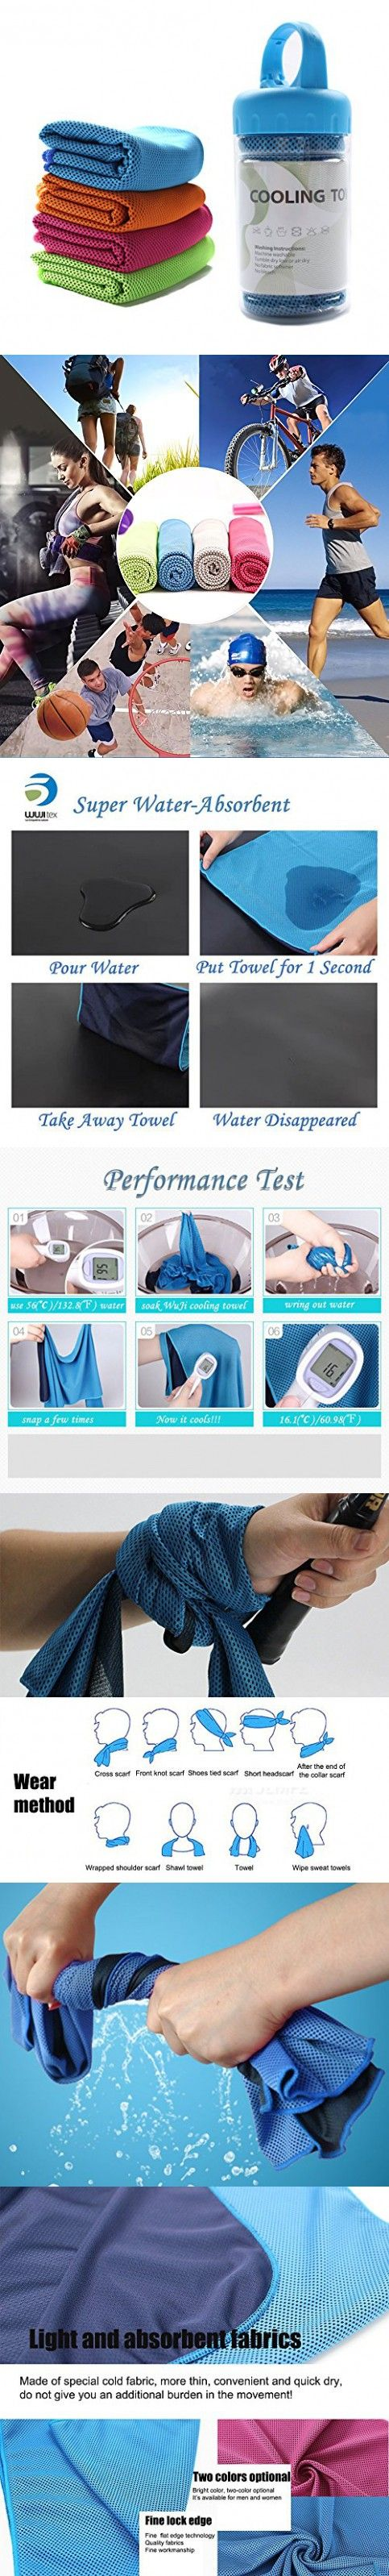 """Cooling Towel WuJi Microfiber Towels for Instant Relief Sports Towel Headwear for Golf Swimming Football Workout Gym 40""""x12"""" Travel Towel for Sweat-Blue"""